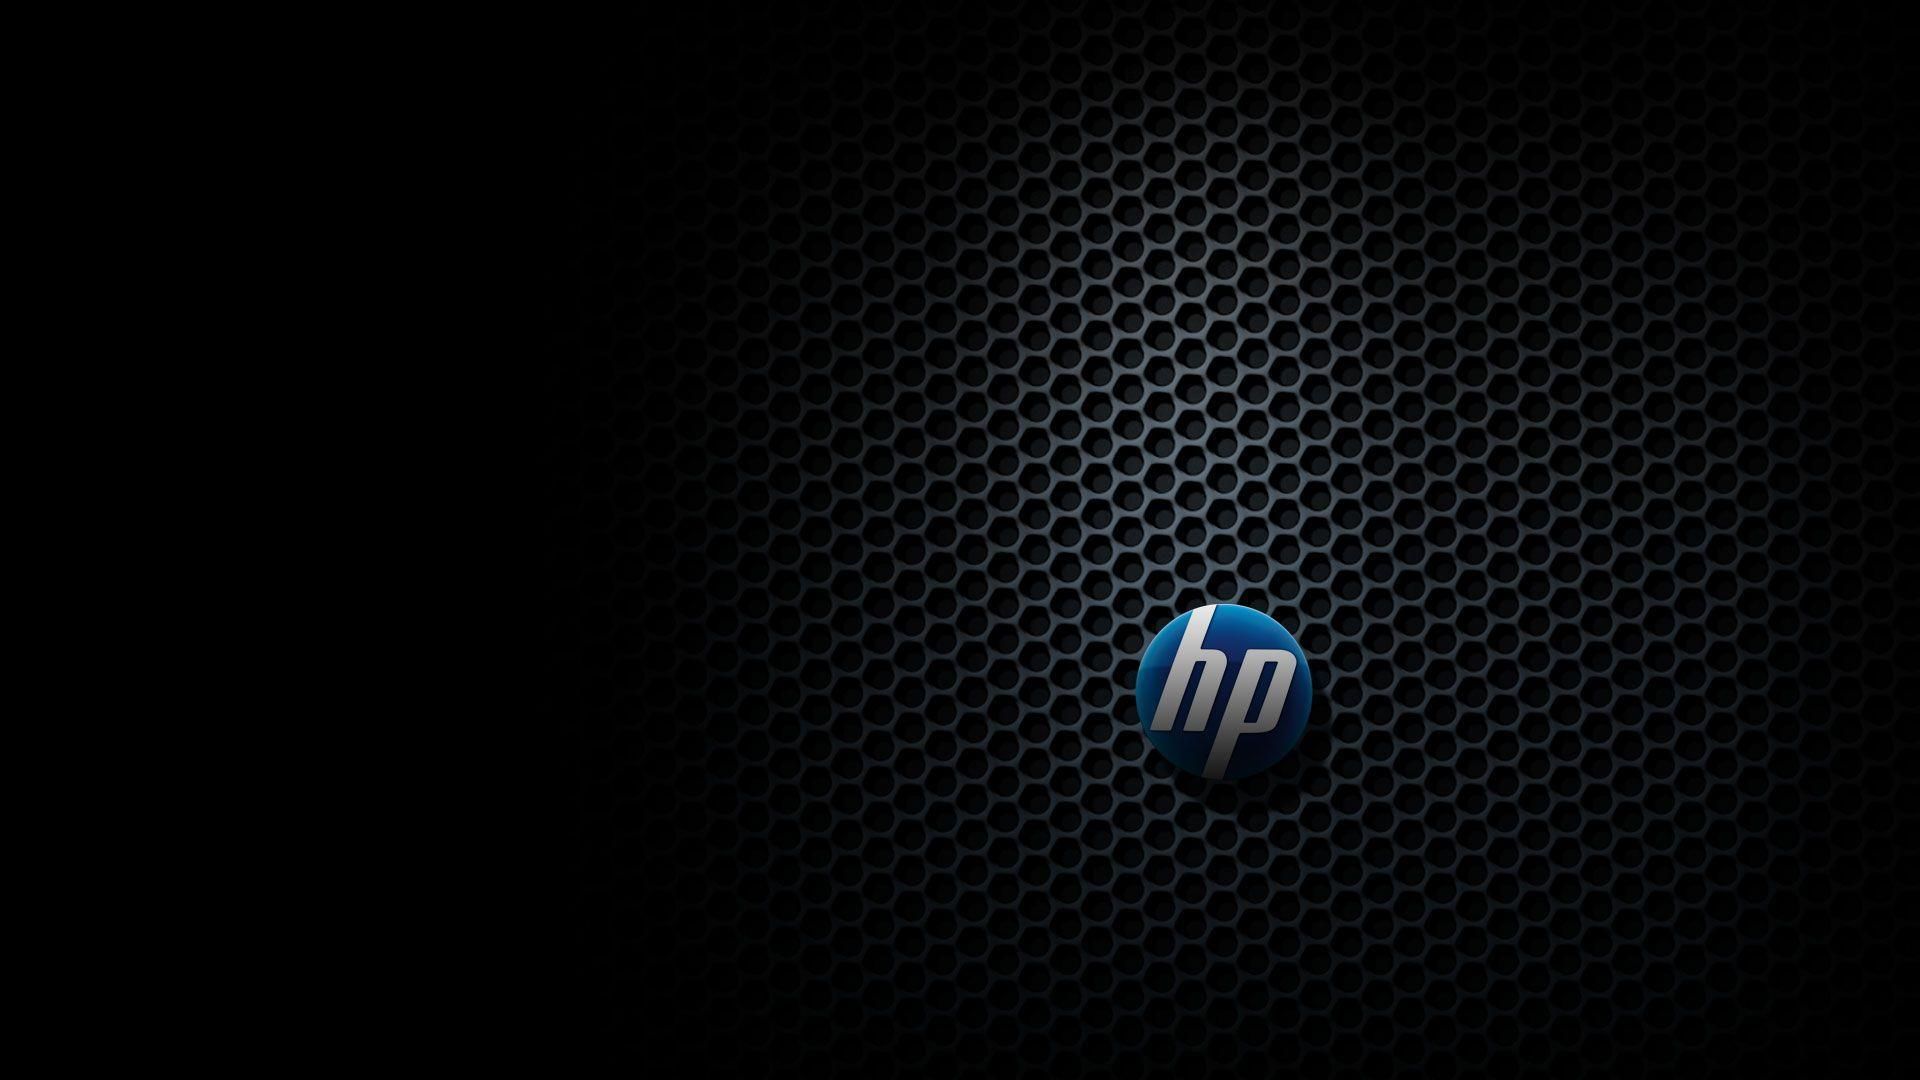 Hp logo wallpapers wallpaper cave for New cool images